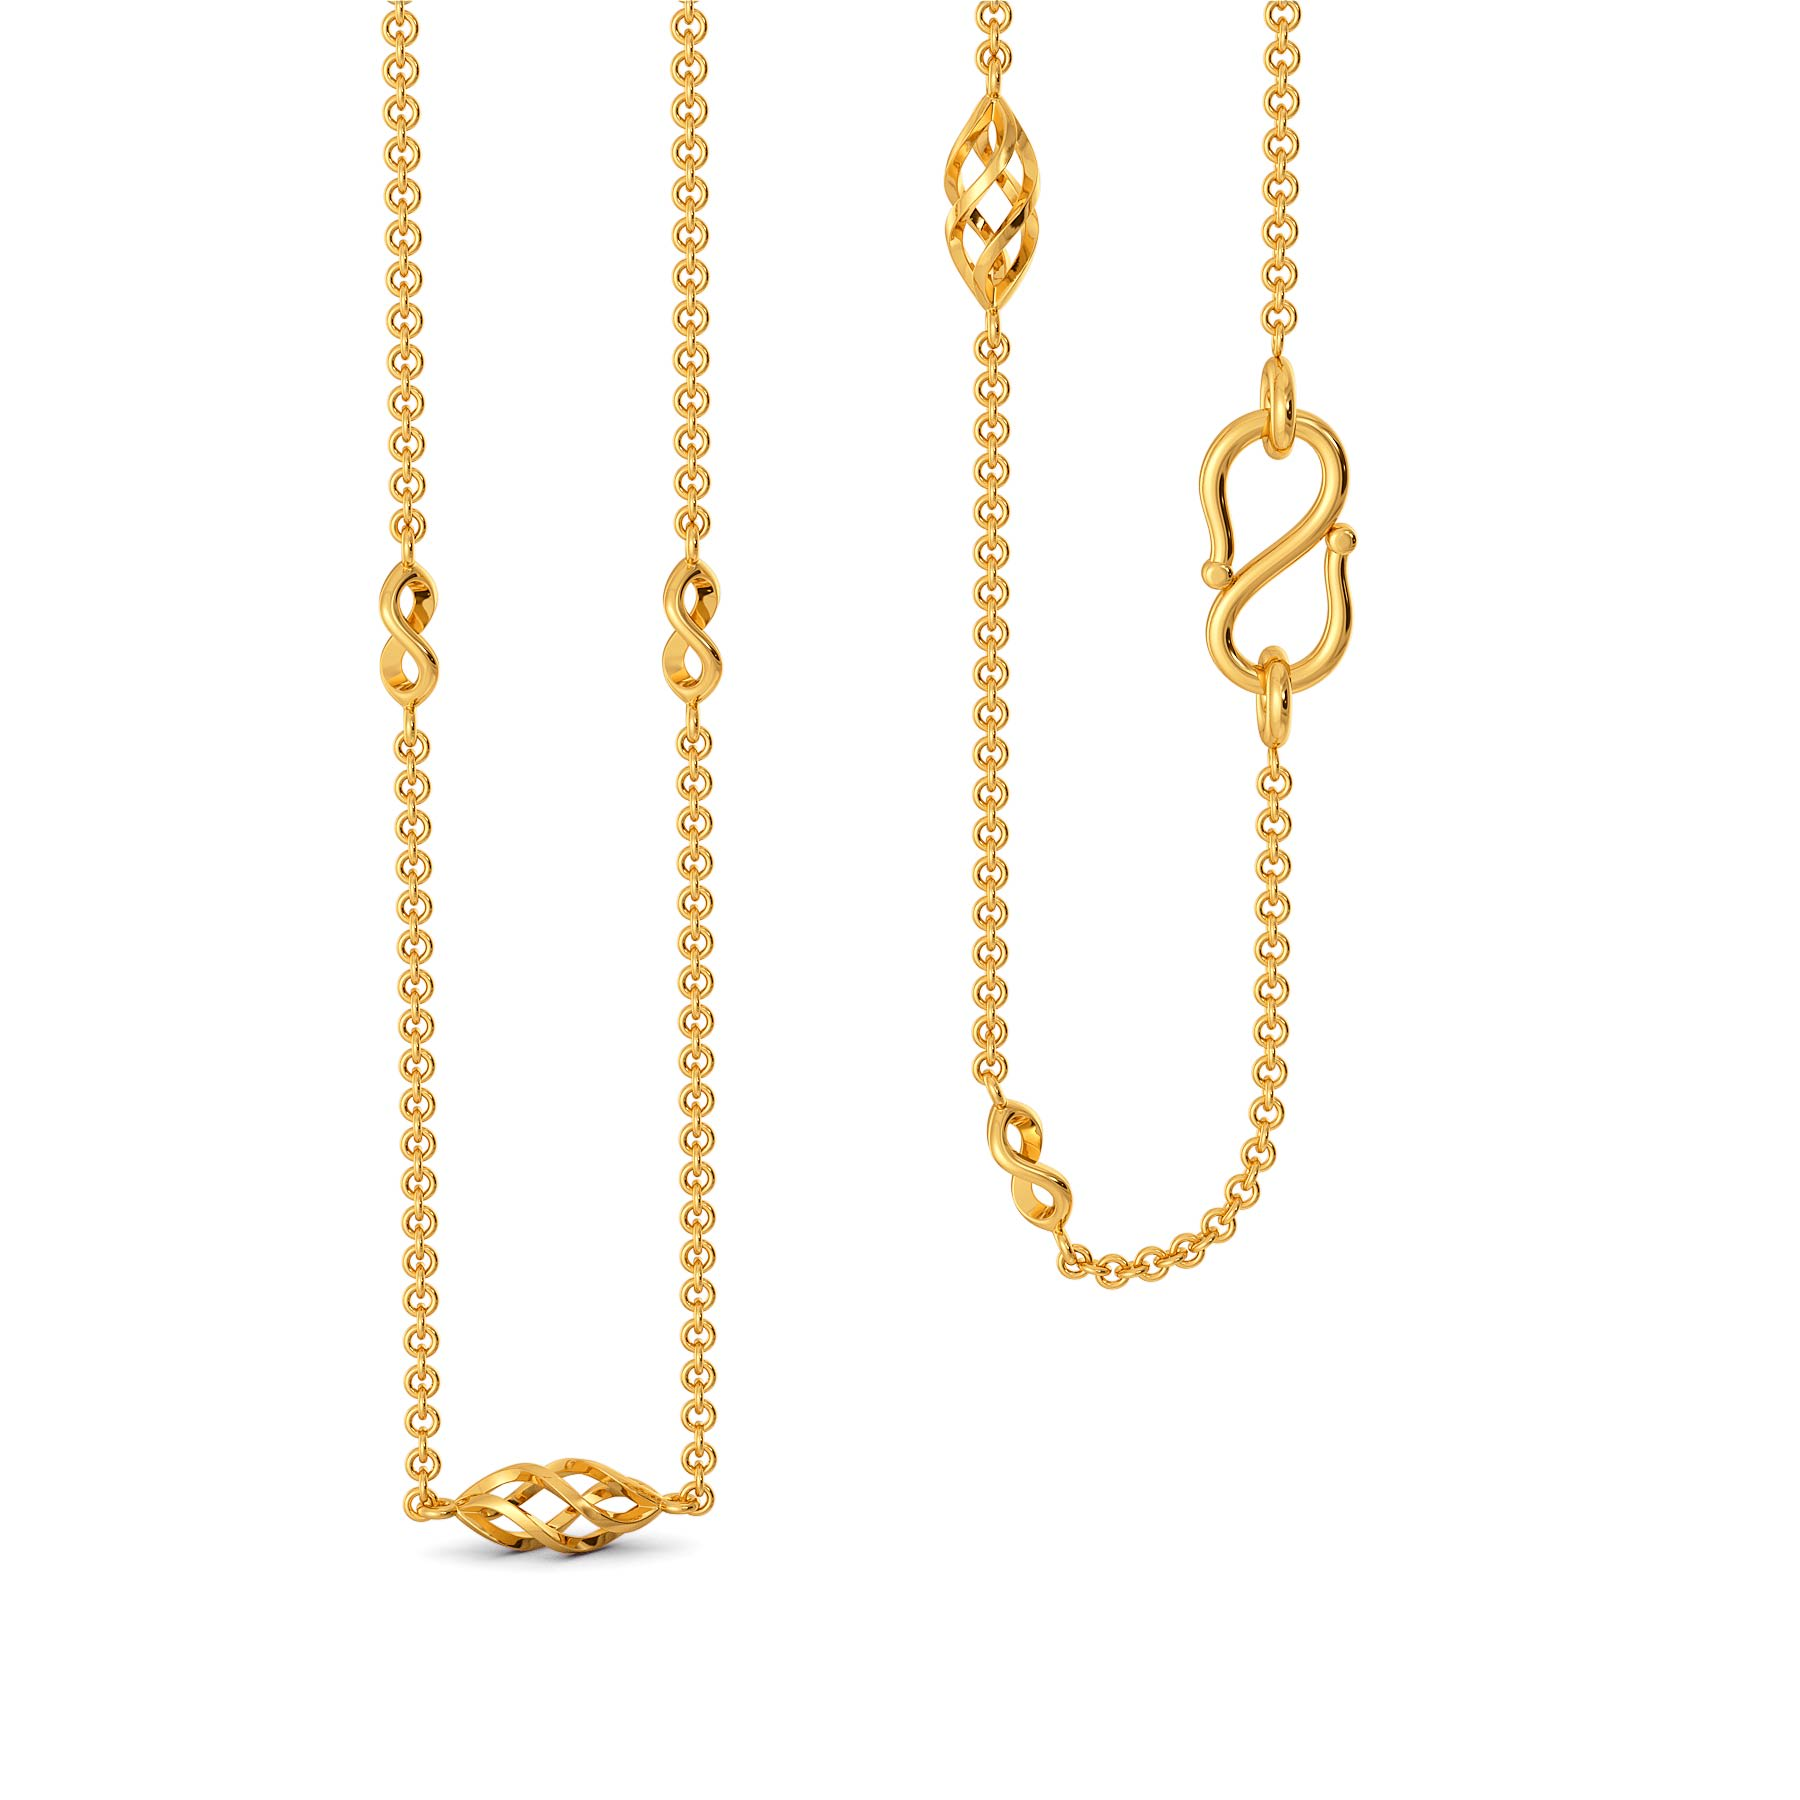 Knot A Ribbon Gold Chains